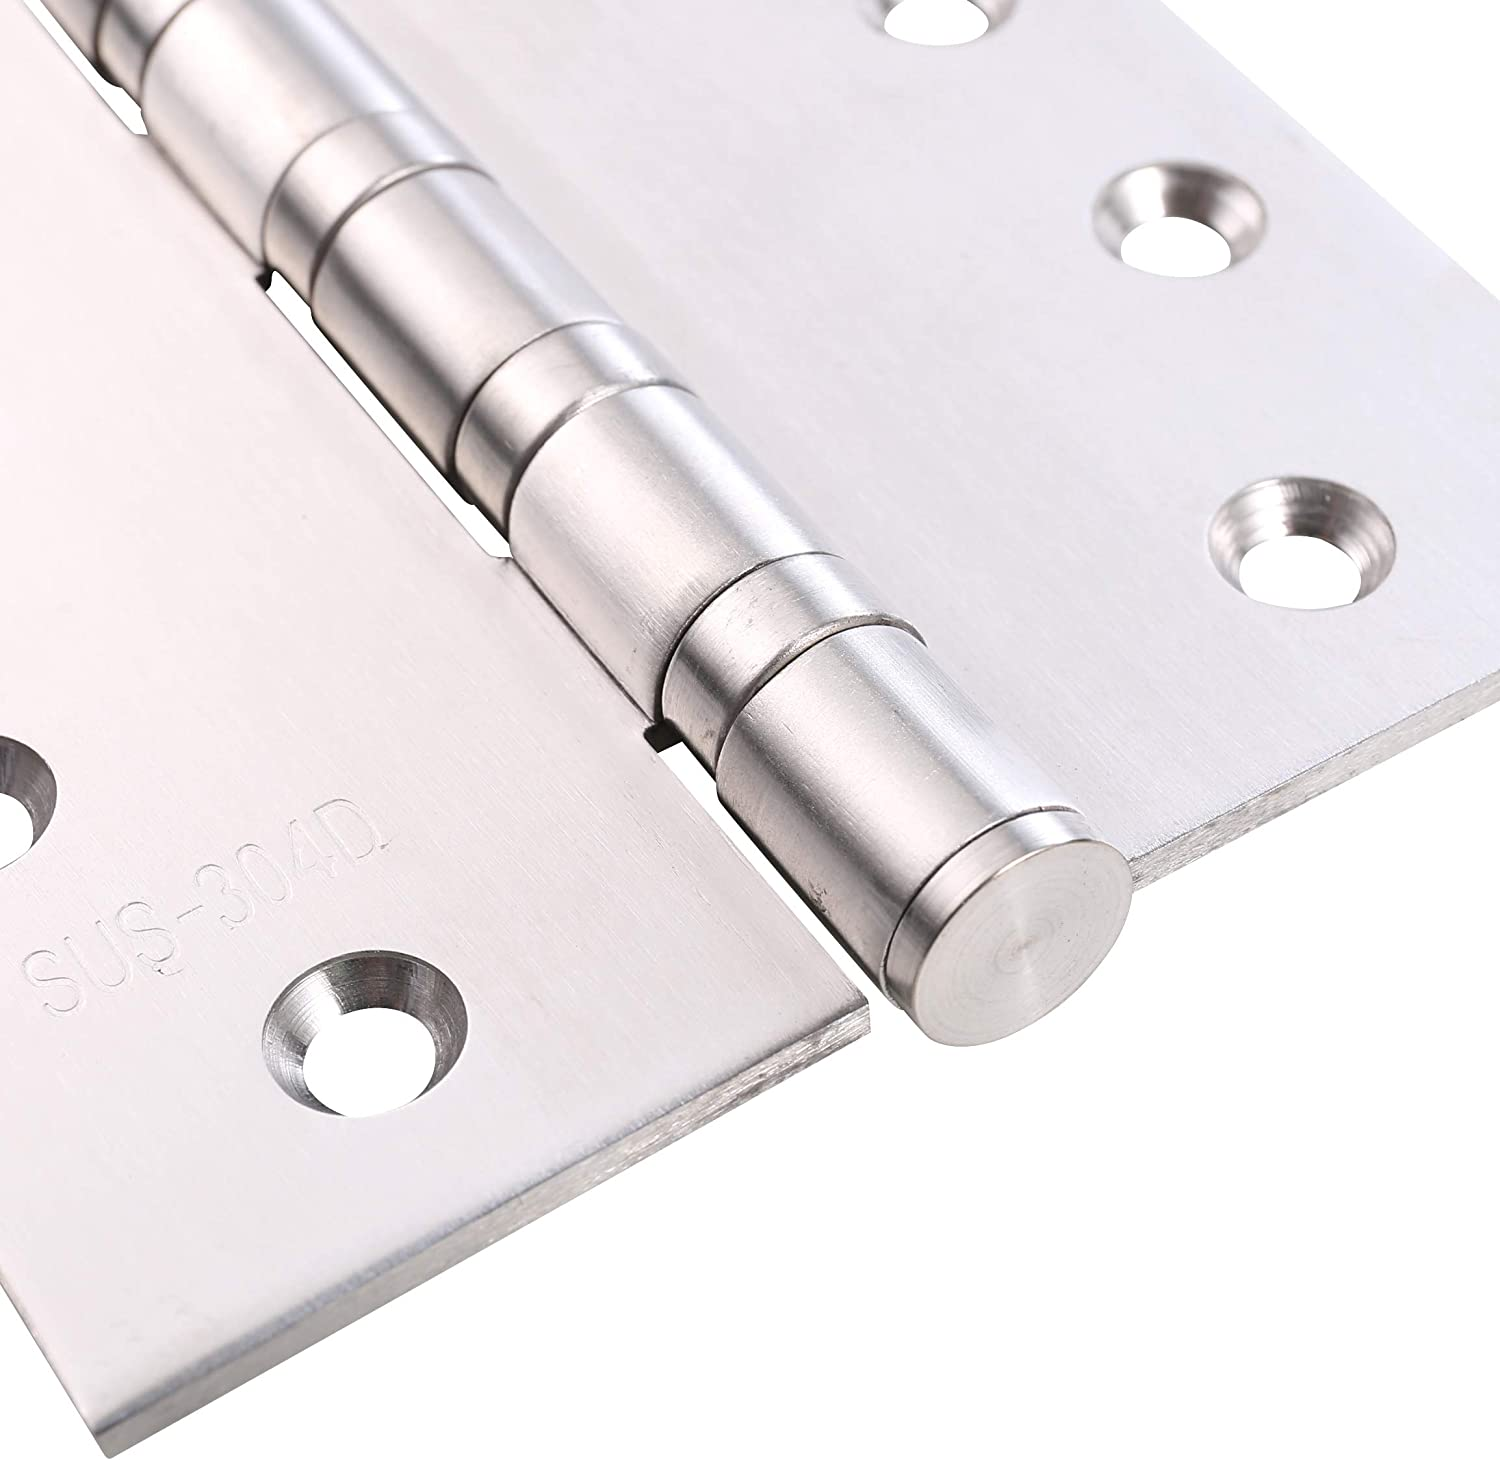 Pack of 2 Squared Conners UHPPOTE Stainless Steel Door Hinges 4inches x 4inches with Soft Close Ball Bearing Brushed Finish